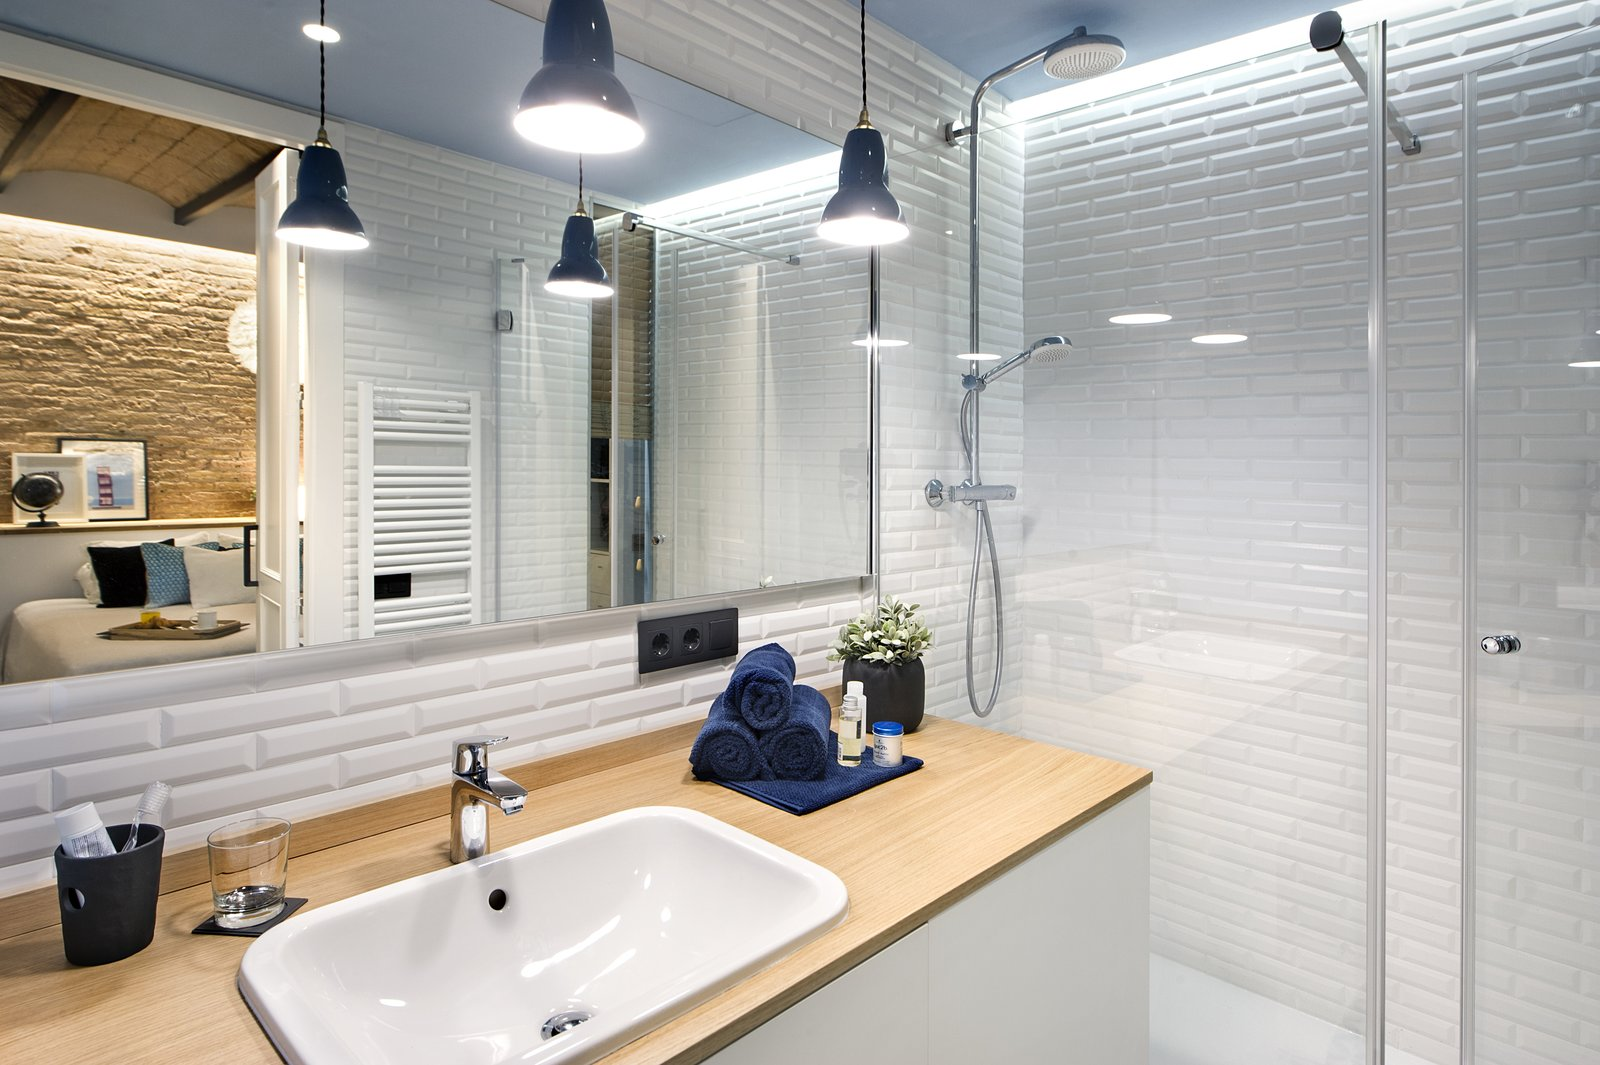 Bath Room, Wood Counter, Enclosed Shower, Drop In Sink, Pendant Lighting, and Ceramic Tile Wall  Urban Beach Home from A Smart Layout Maximizes Space in This Compact Urban Beach Apartment in Barcelona